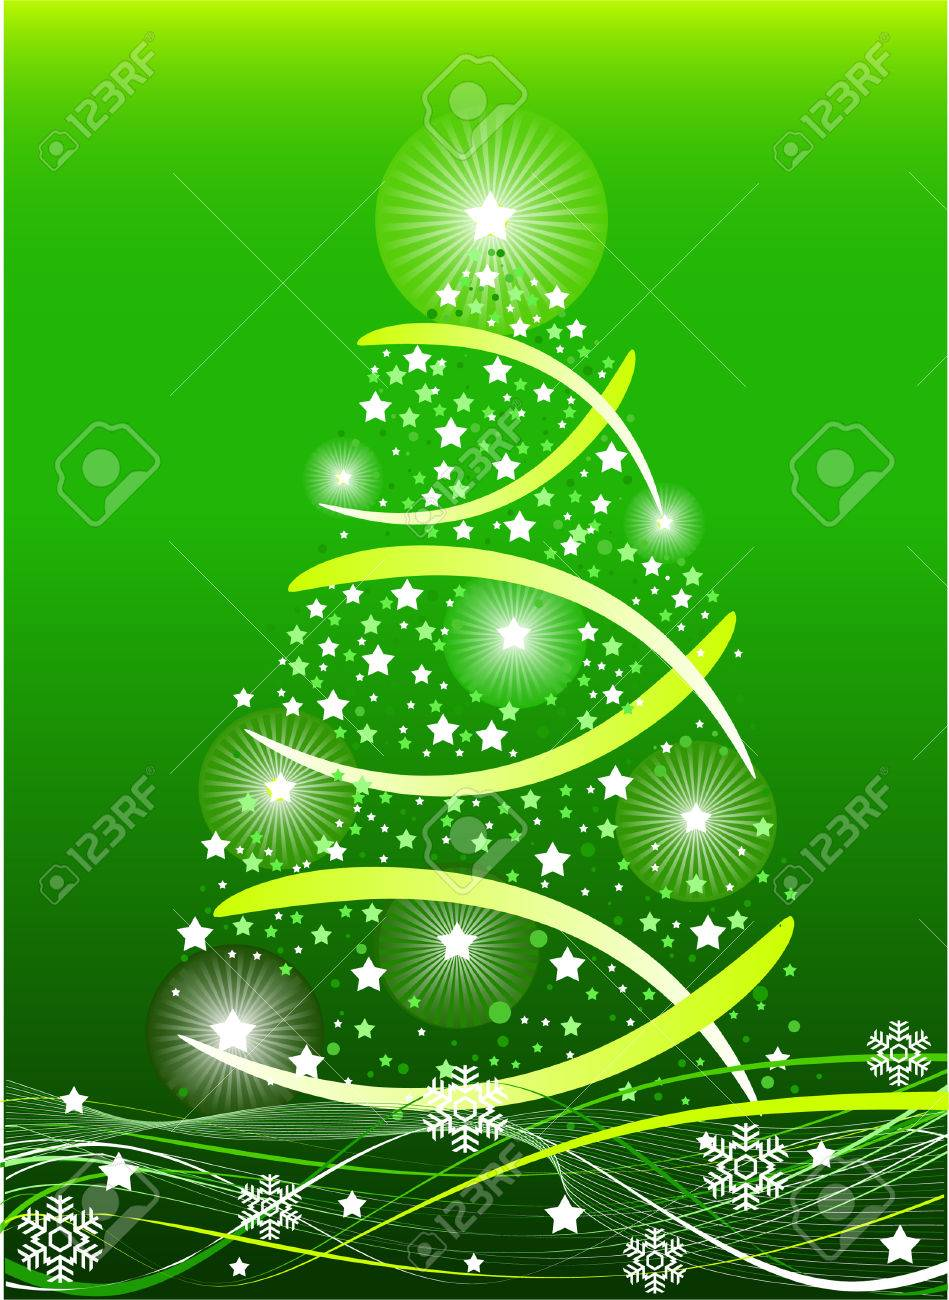 Green color Christmas background, vector illustration Stock Vector - 5660102